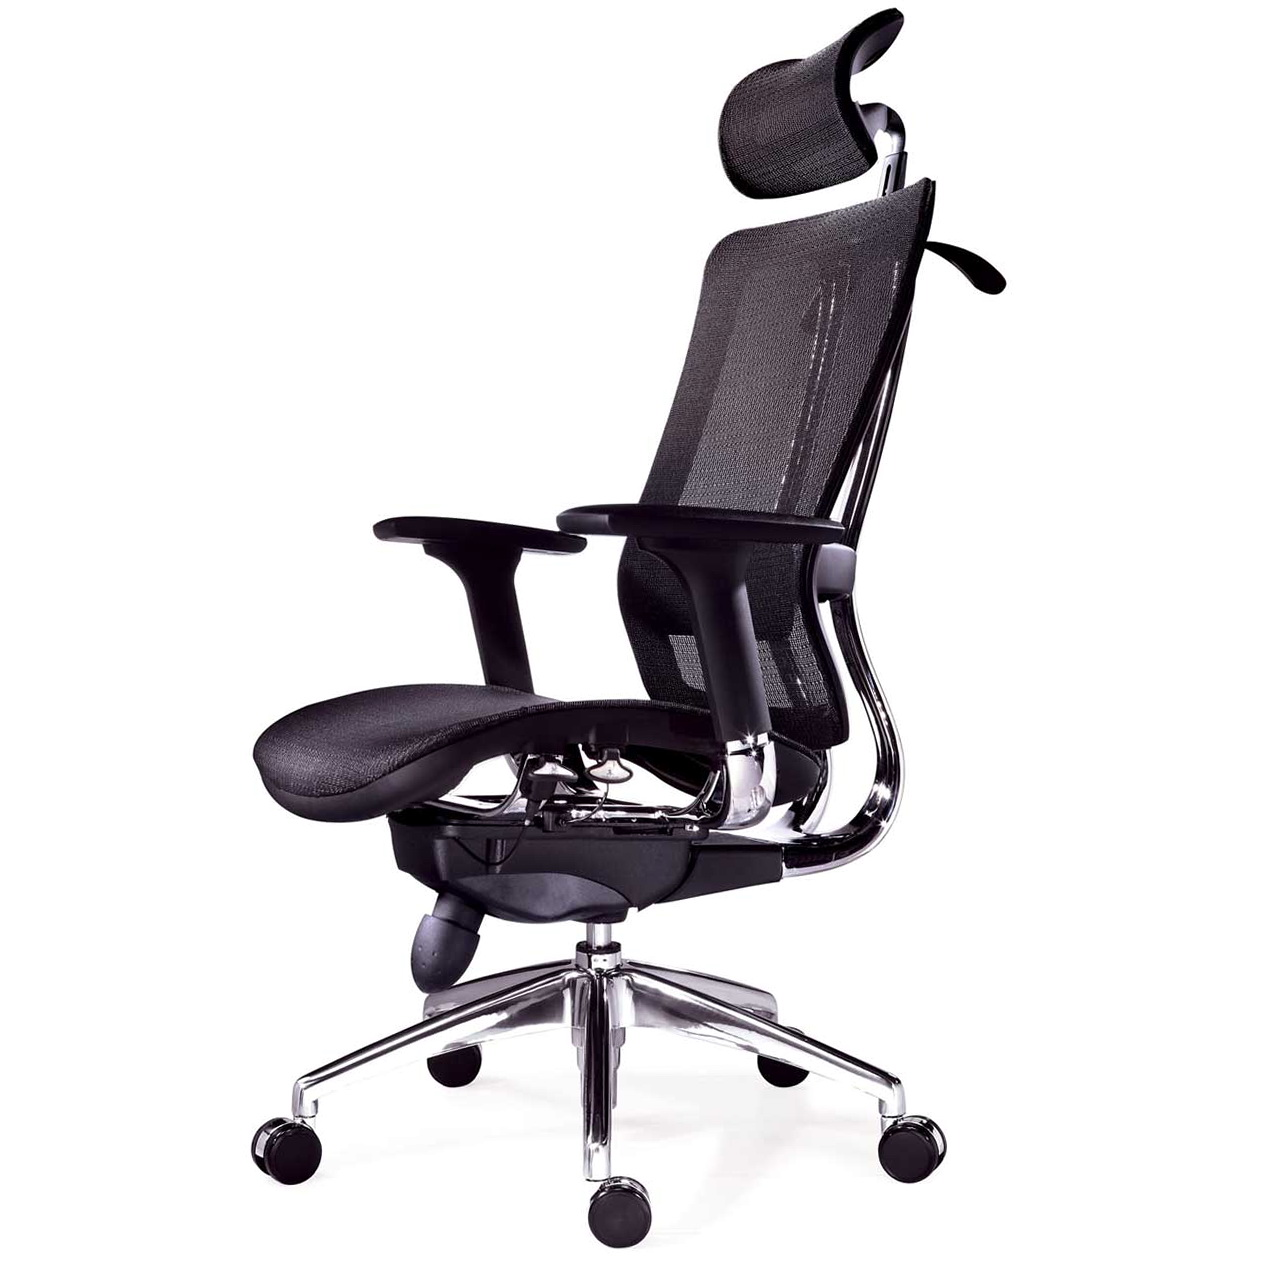 Most Comfortable Office Chair Ever